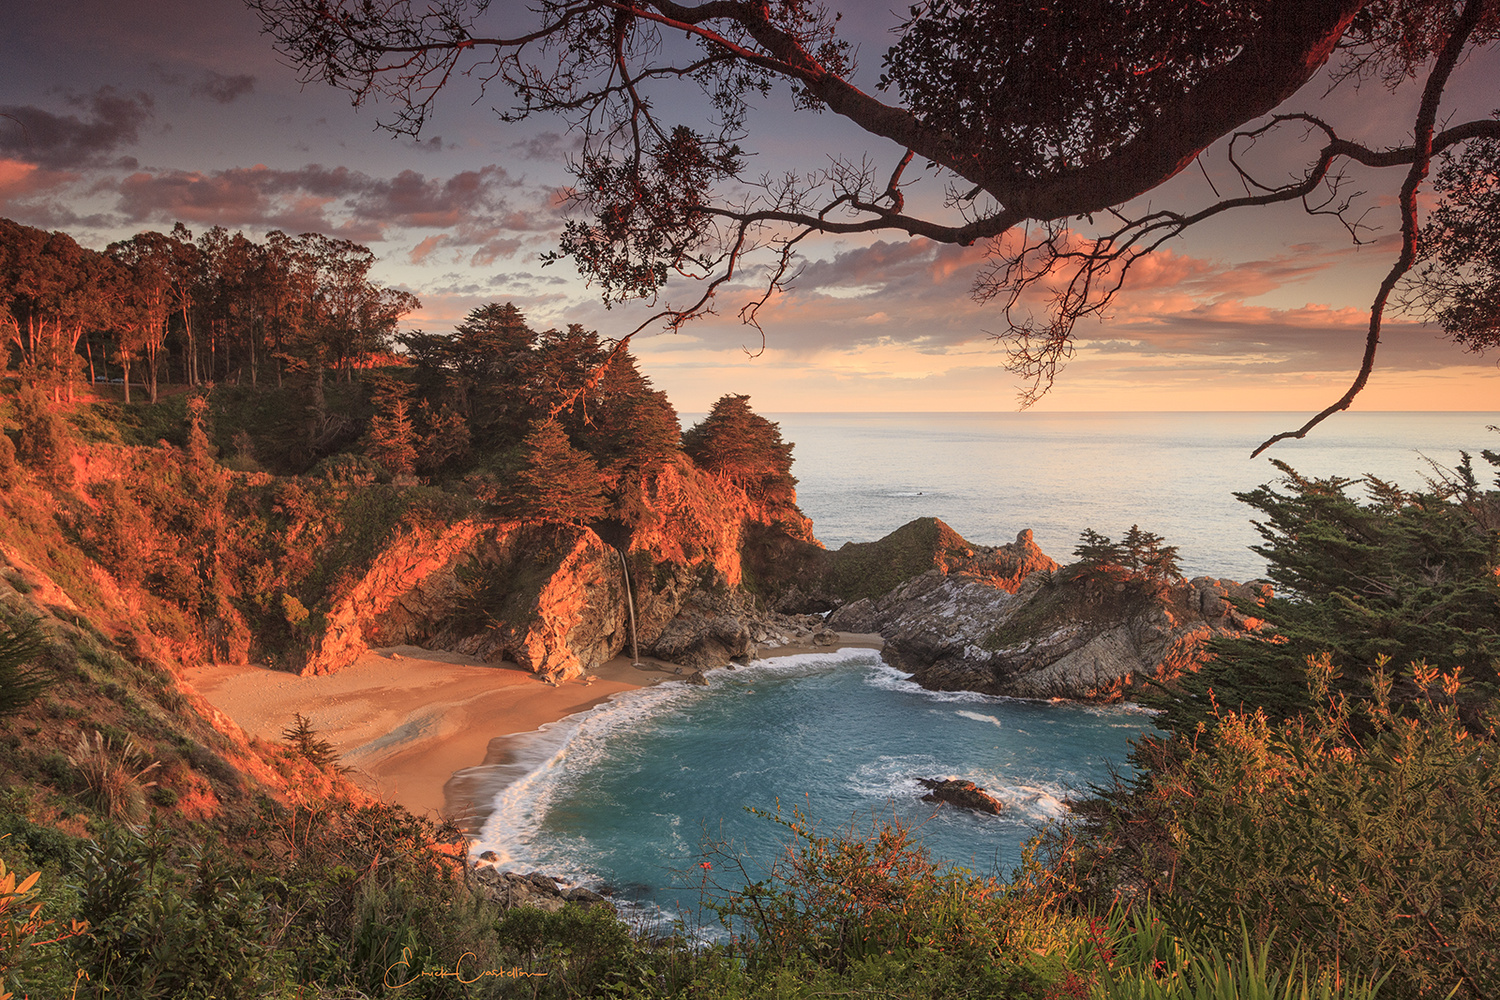 Paradise at Mcway Falls by Erick Castellon